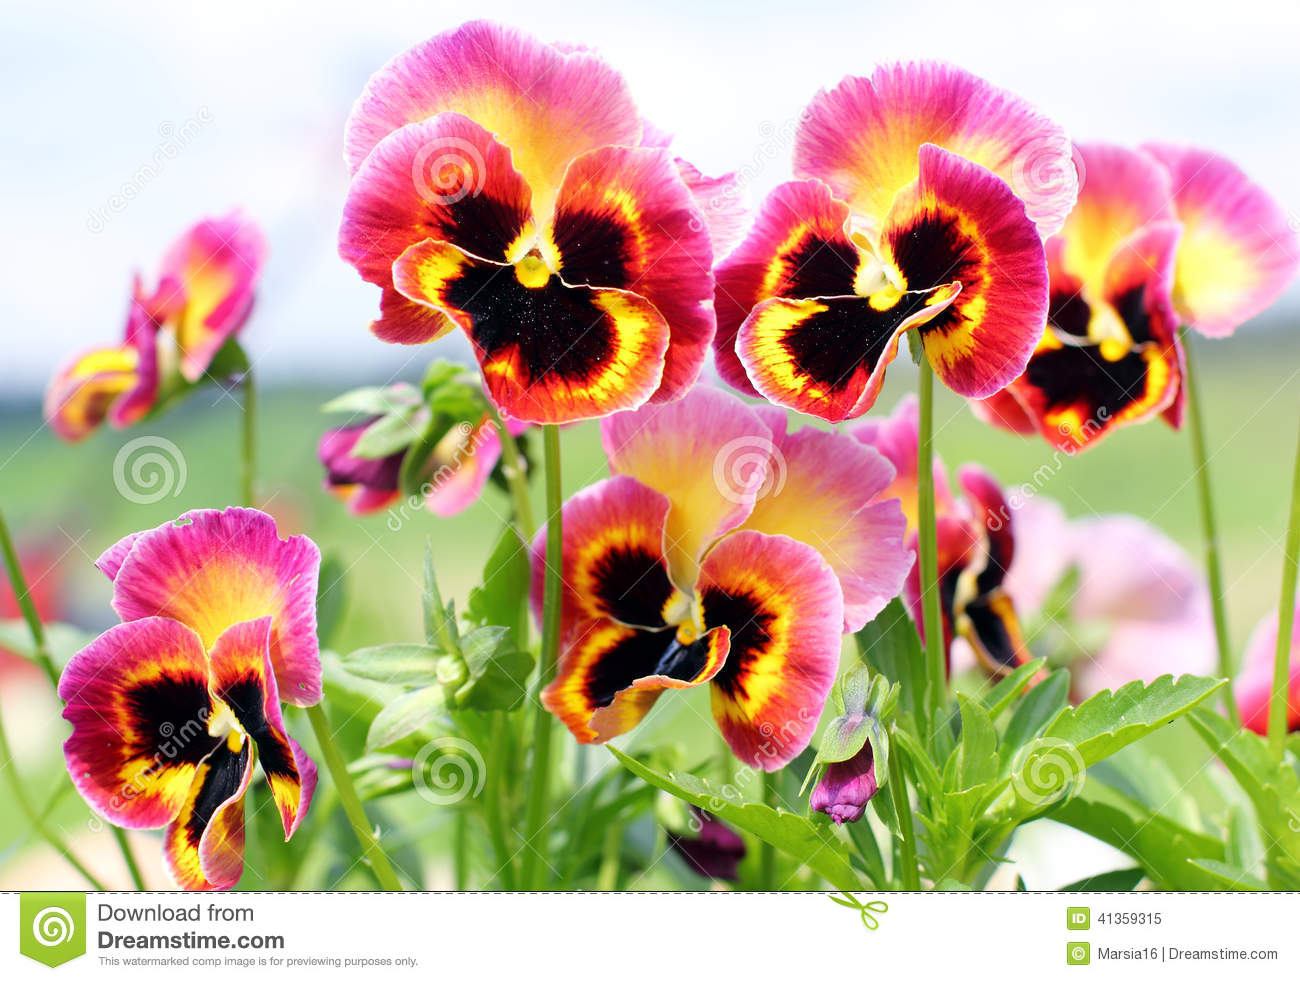 Pansy flowers pink yellow black closeup stock photo image of bloom pansy flowers pink yellow black closeup royalty free stock photo mightylinksfo